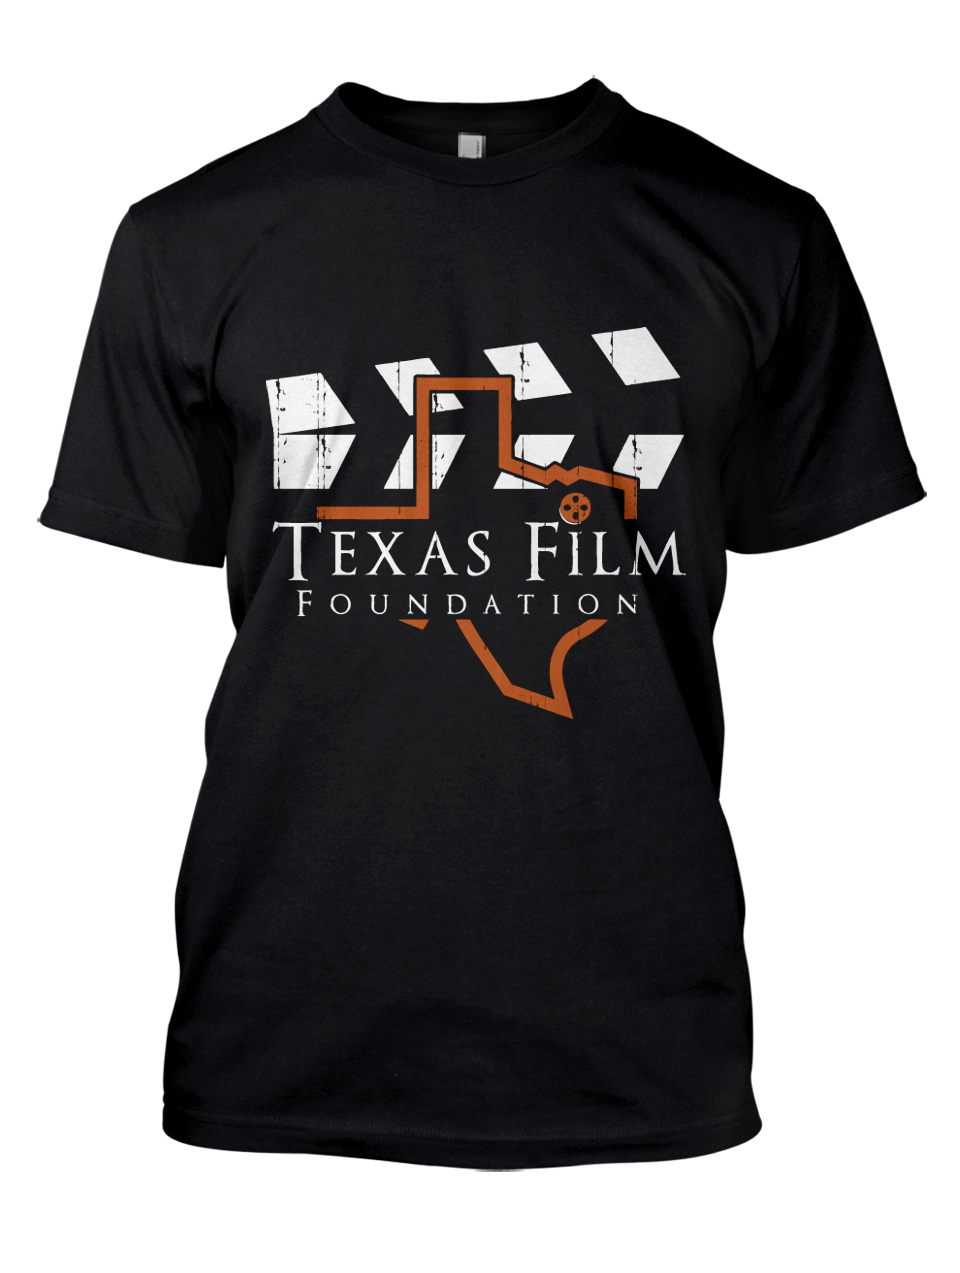 27 upmarket modern film production t shirt designs for a for Non profit t shirt design